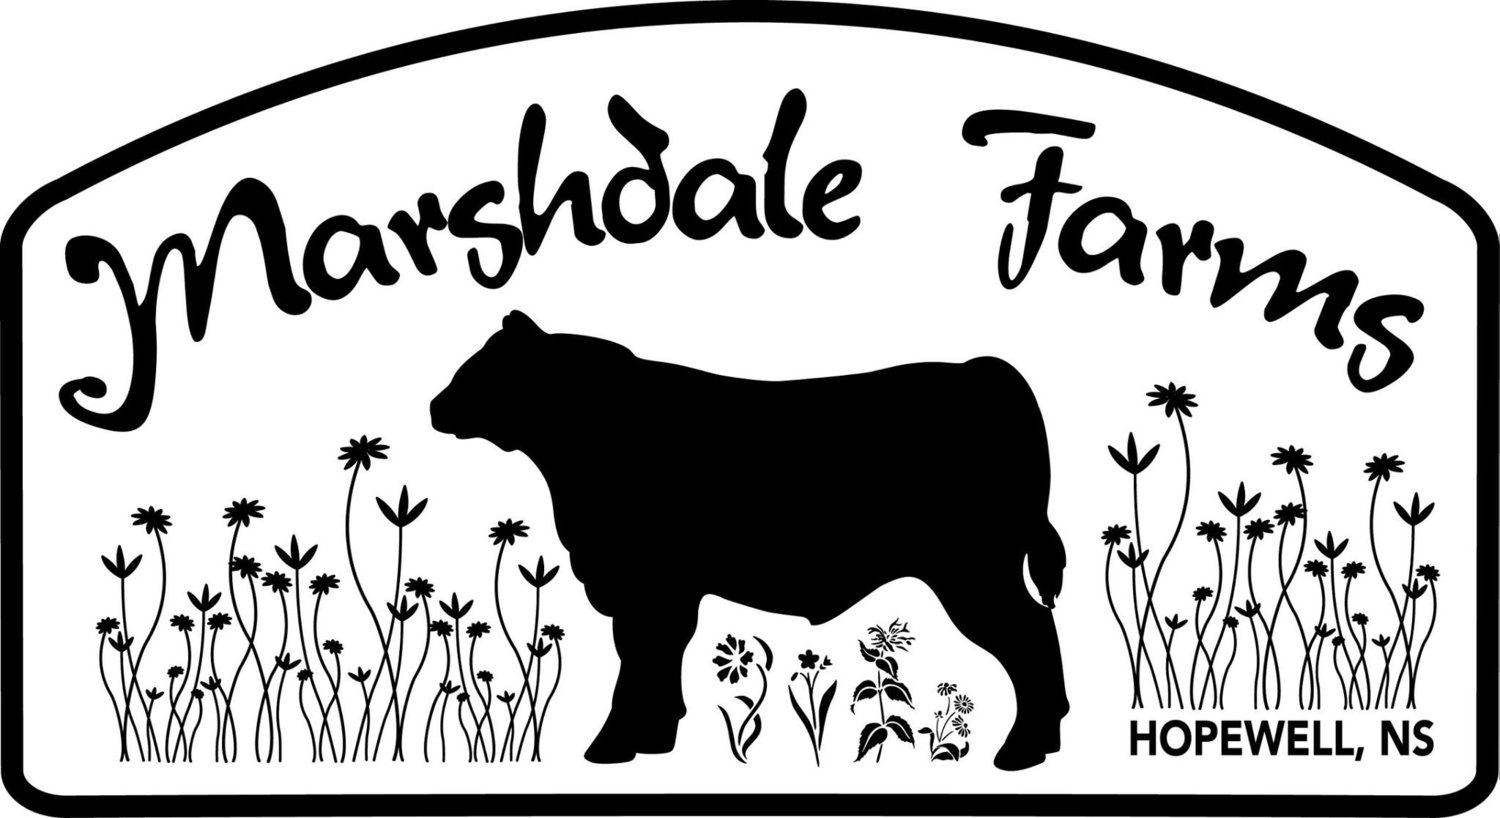 Marshdale Farms